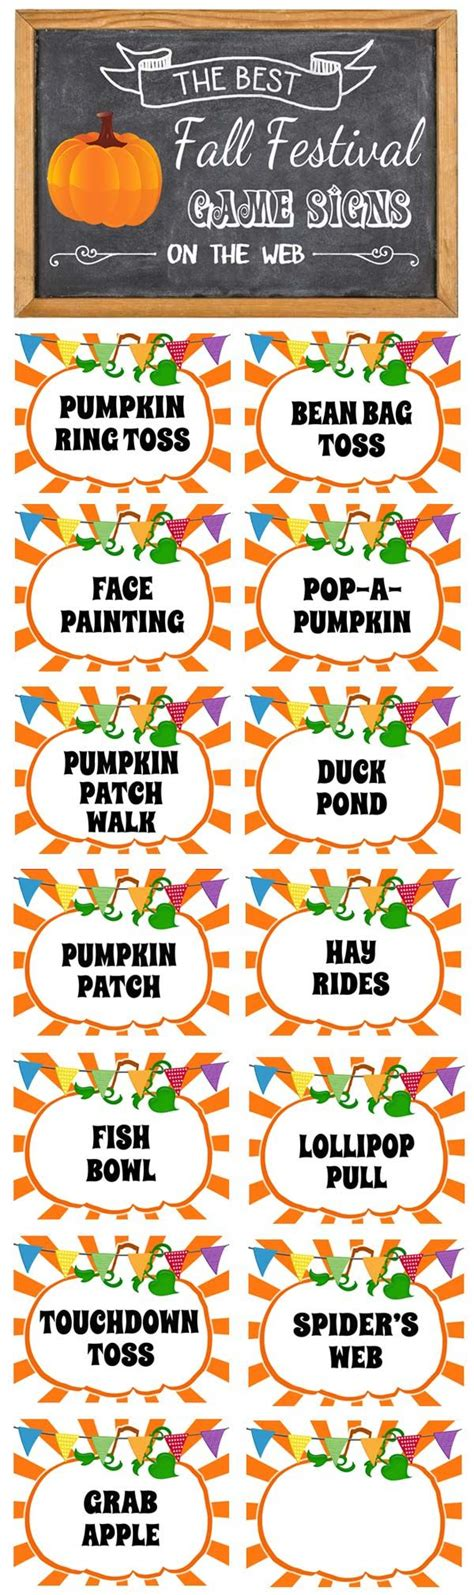 carnival half sheet punch card template fall festival signs free printable signs